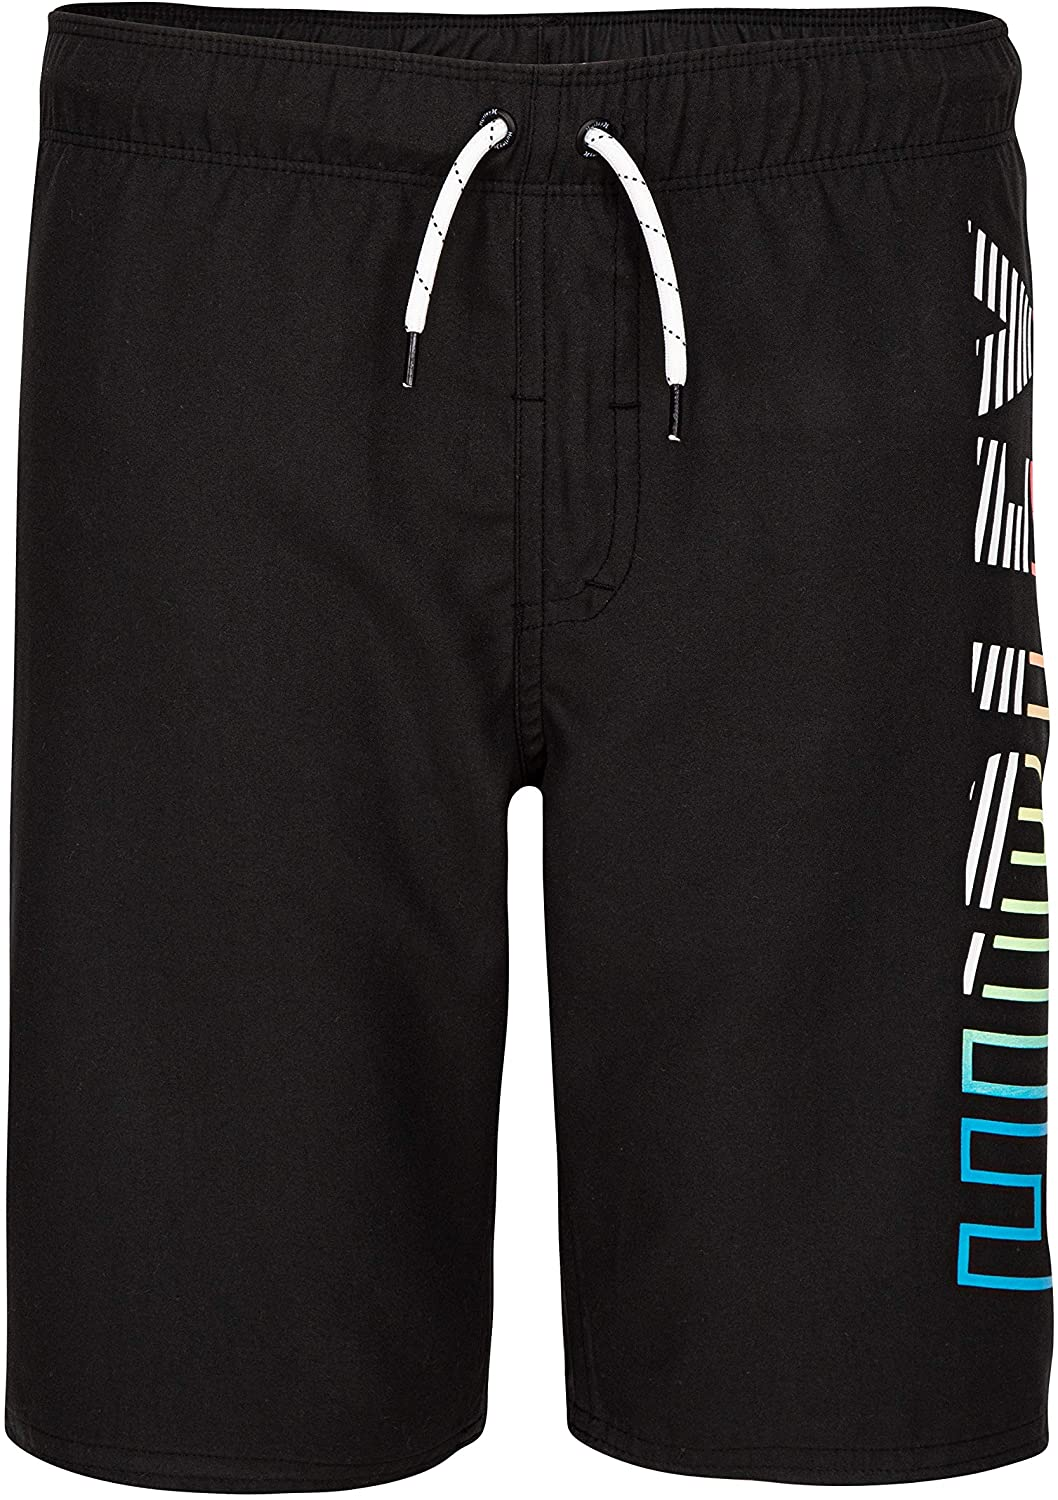 Hurley boys Pull on Board Shorts: Clothing, Shoes & Jewelry